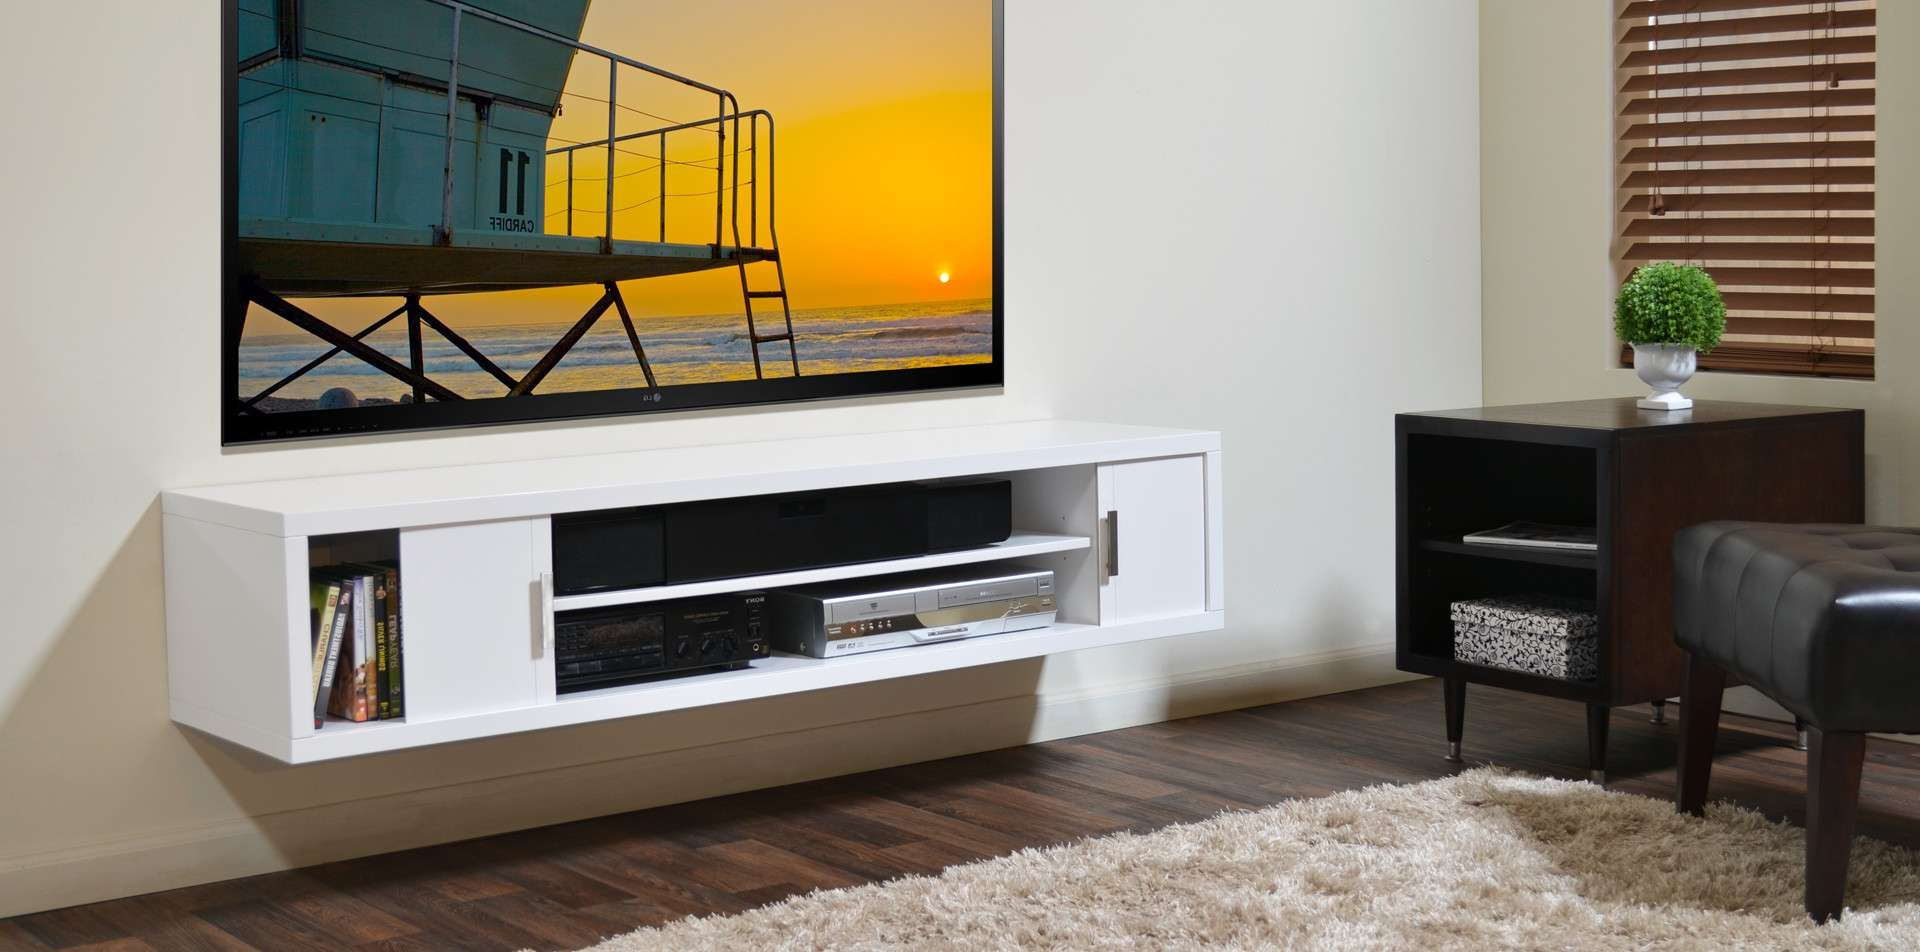 Floating Tv Shelf (View 13 of 15)